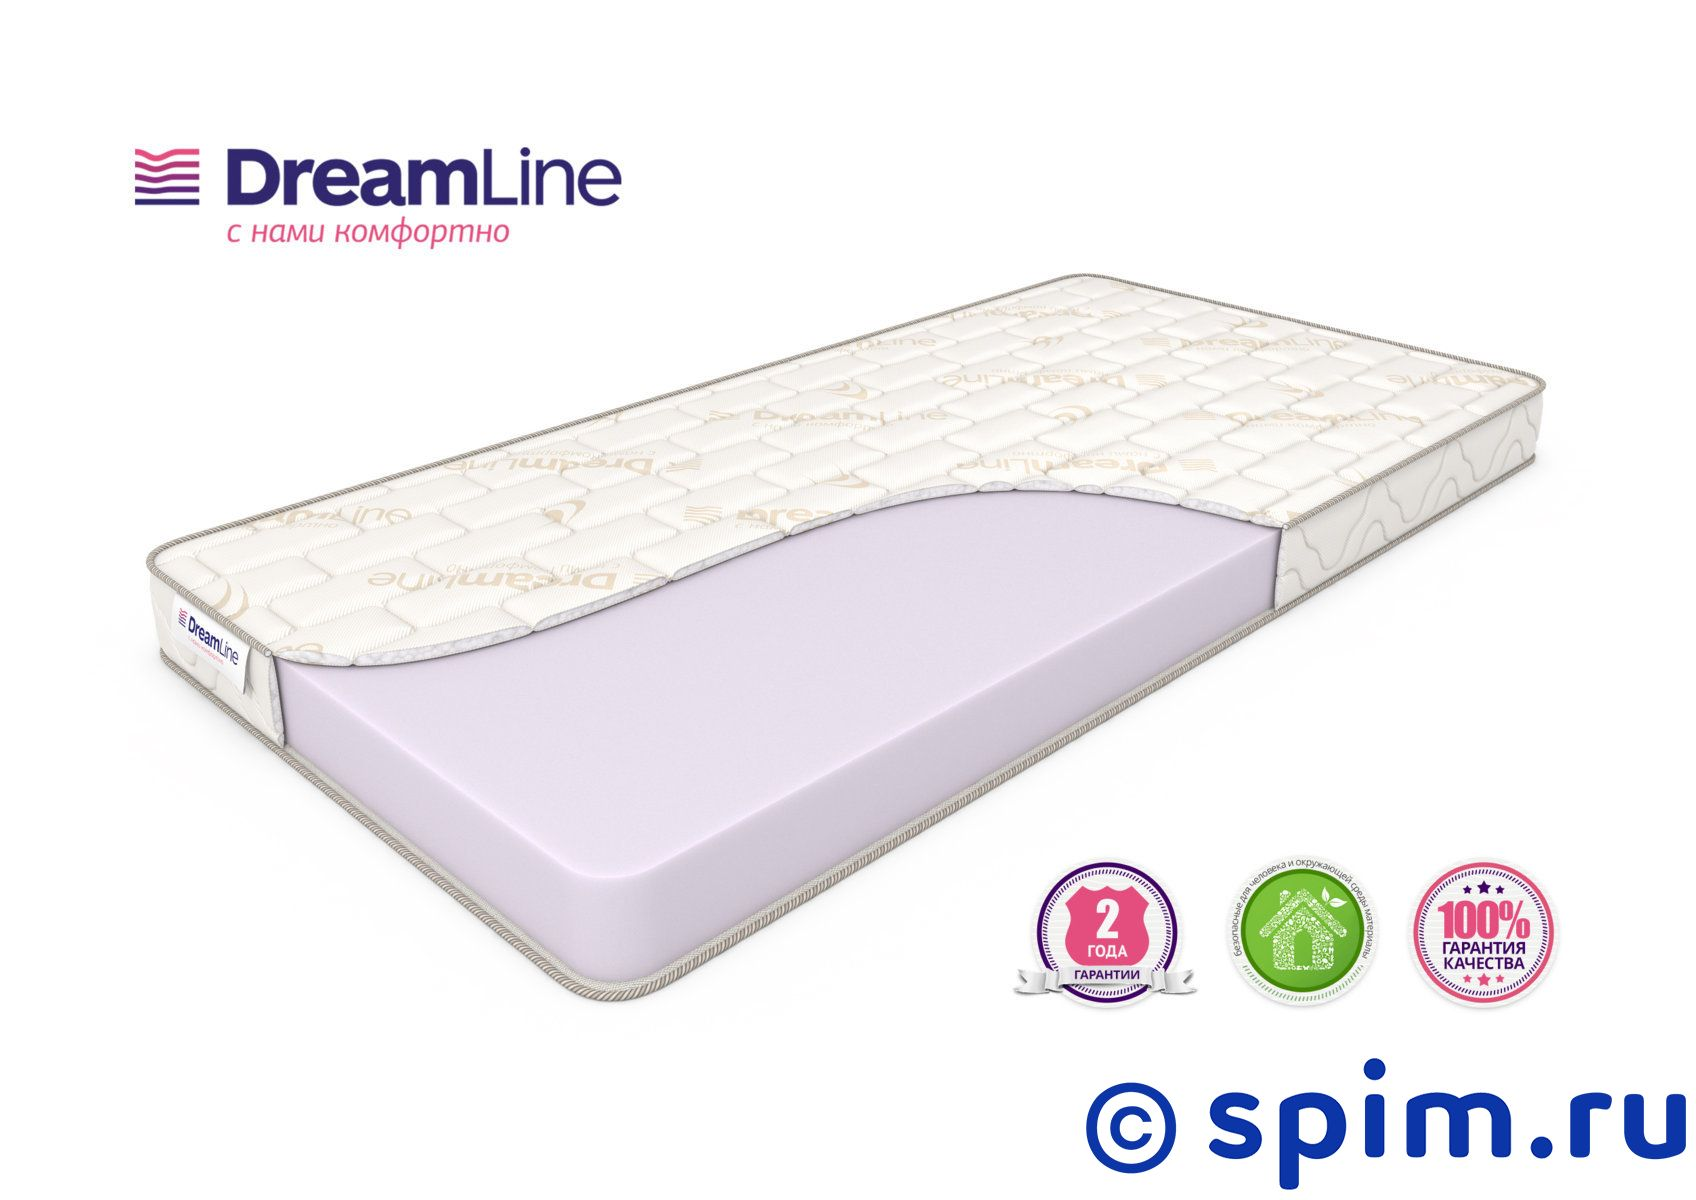 Матрас DreamLine Roll Slim 200х195 см